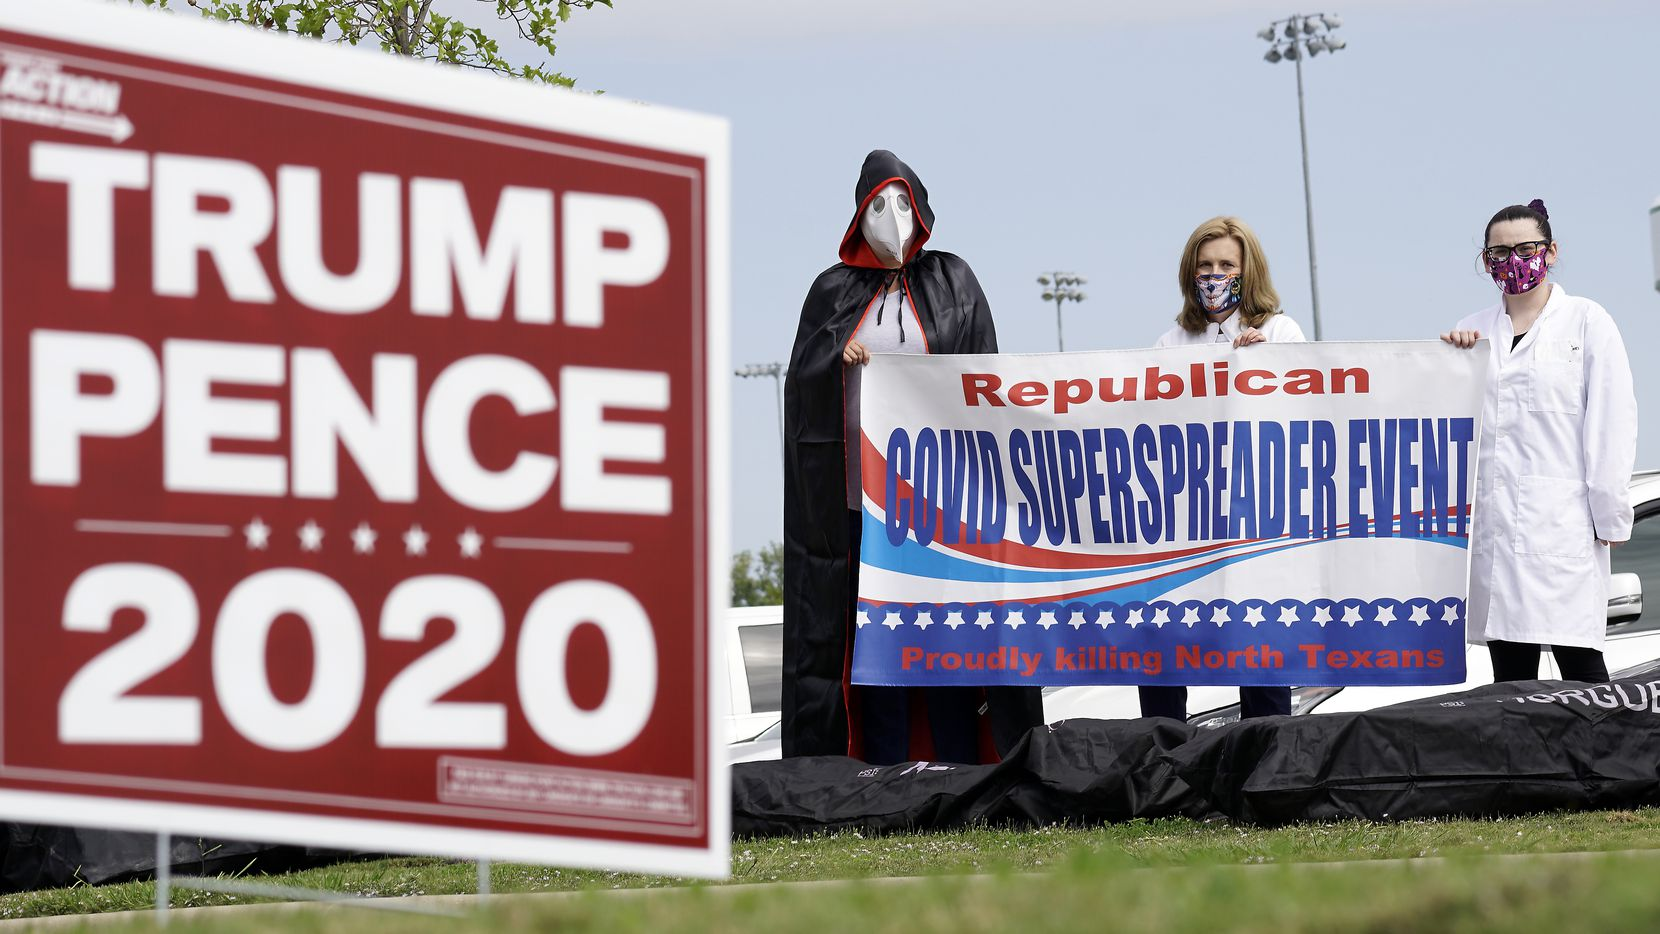 Members of Indivisible 24, a local chapter of the political progressive nonprofit, stand outside a Trump supporter event at The Marq in Southlake, Texas on Saturday, October 24, 2020.  (Lawrence Jenkins/Special Contributor)